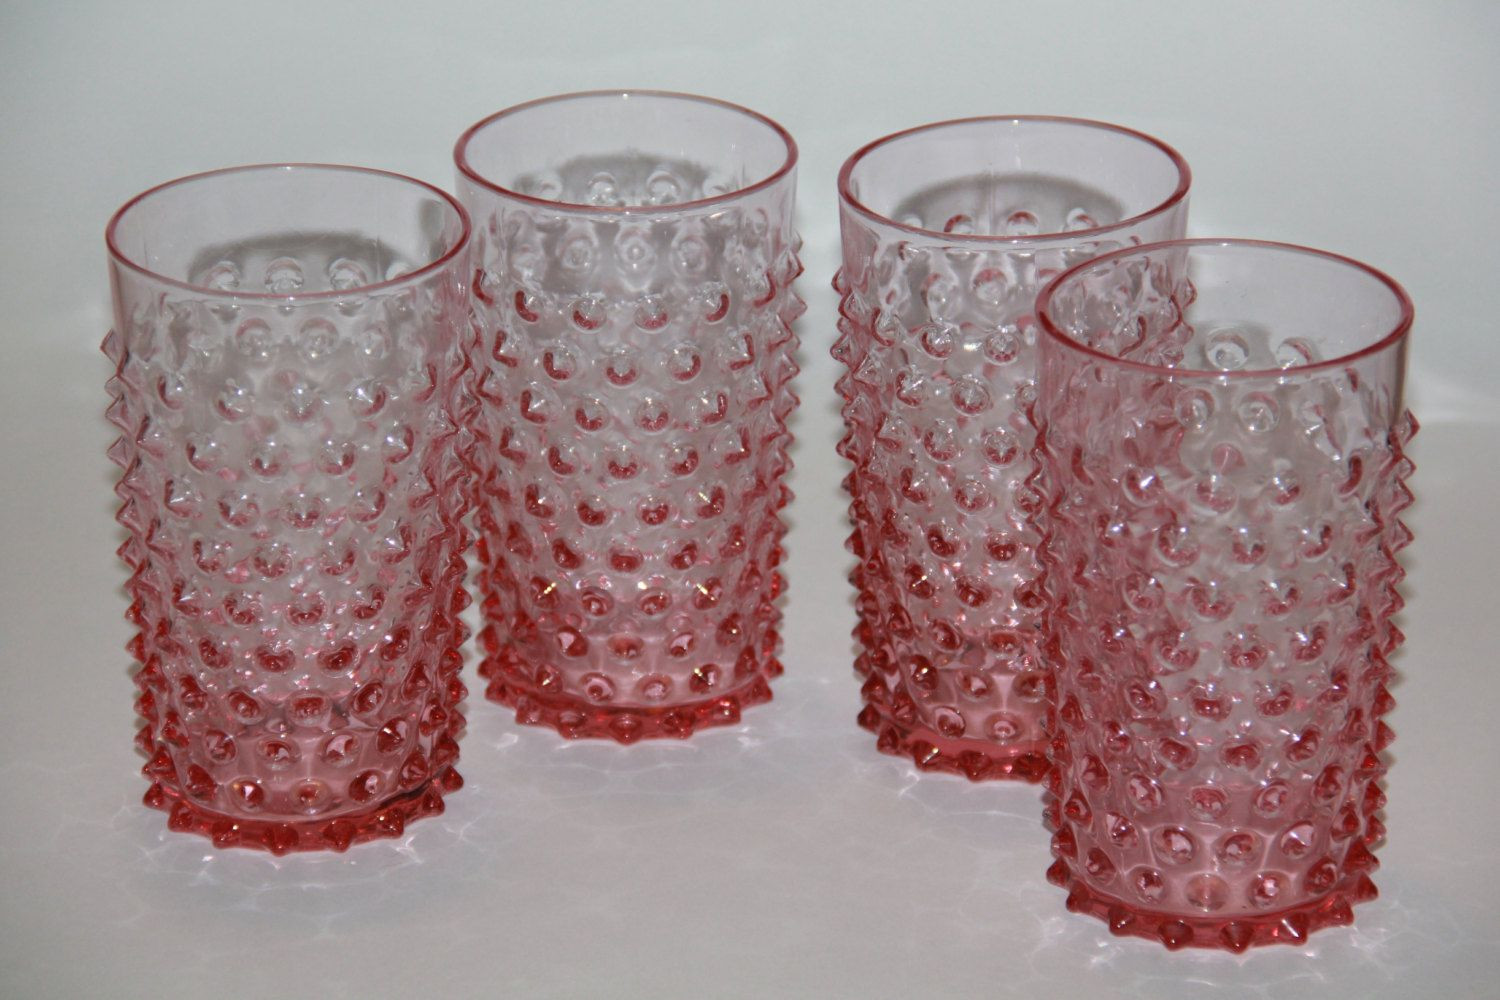 Hobnail Clear Glass Vase Of Antique Pink Hobnail Glass Tumblers Depression Glass Set Of 4 with Antique Pink Hobnail Glass Tumblers Depression Glass Set Of 4 40 00 Via Etsy